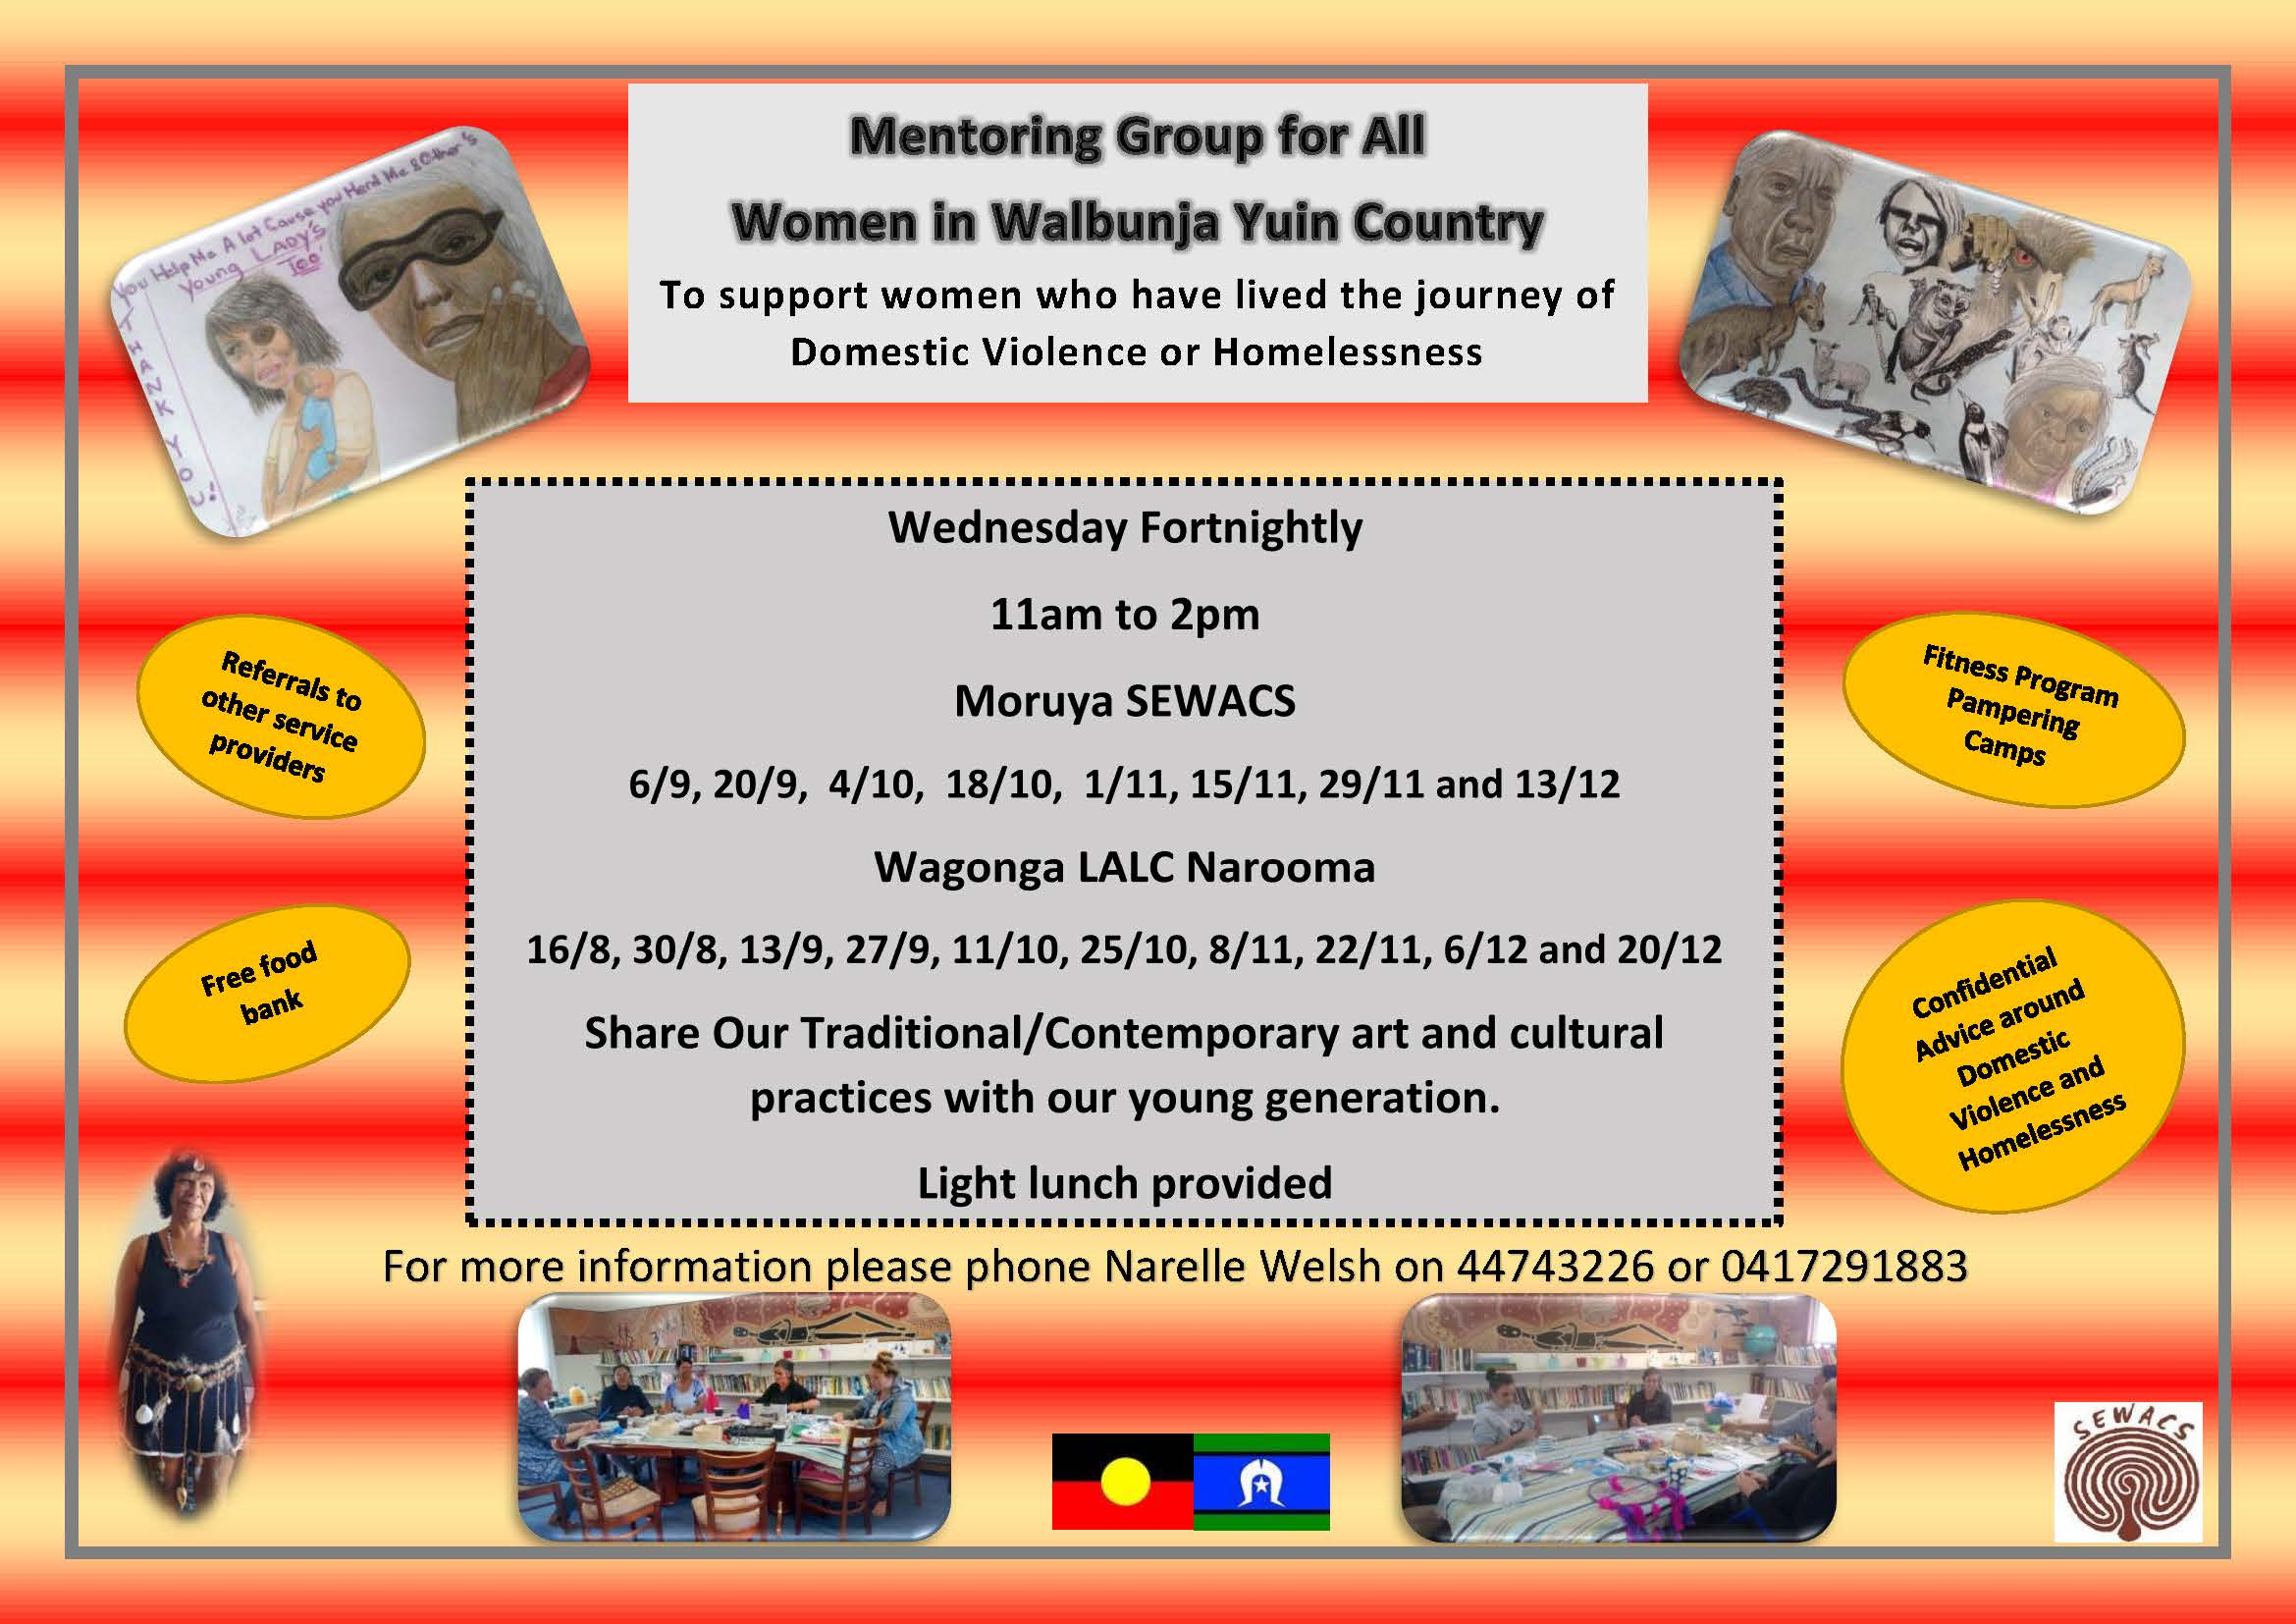 Mentoring Group For All Women In Walbunja Yuin Country